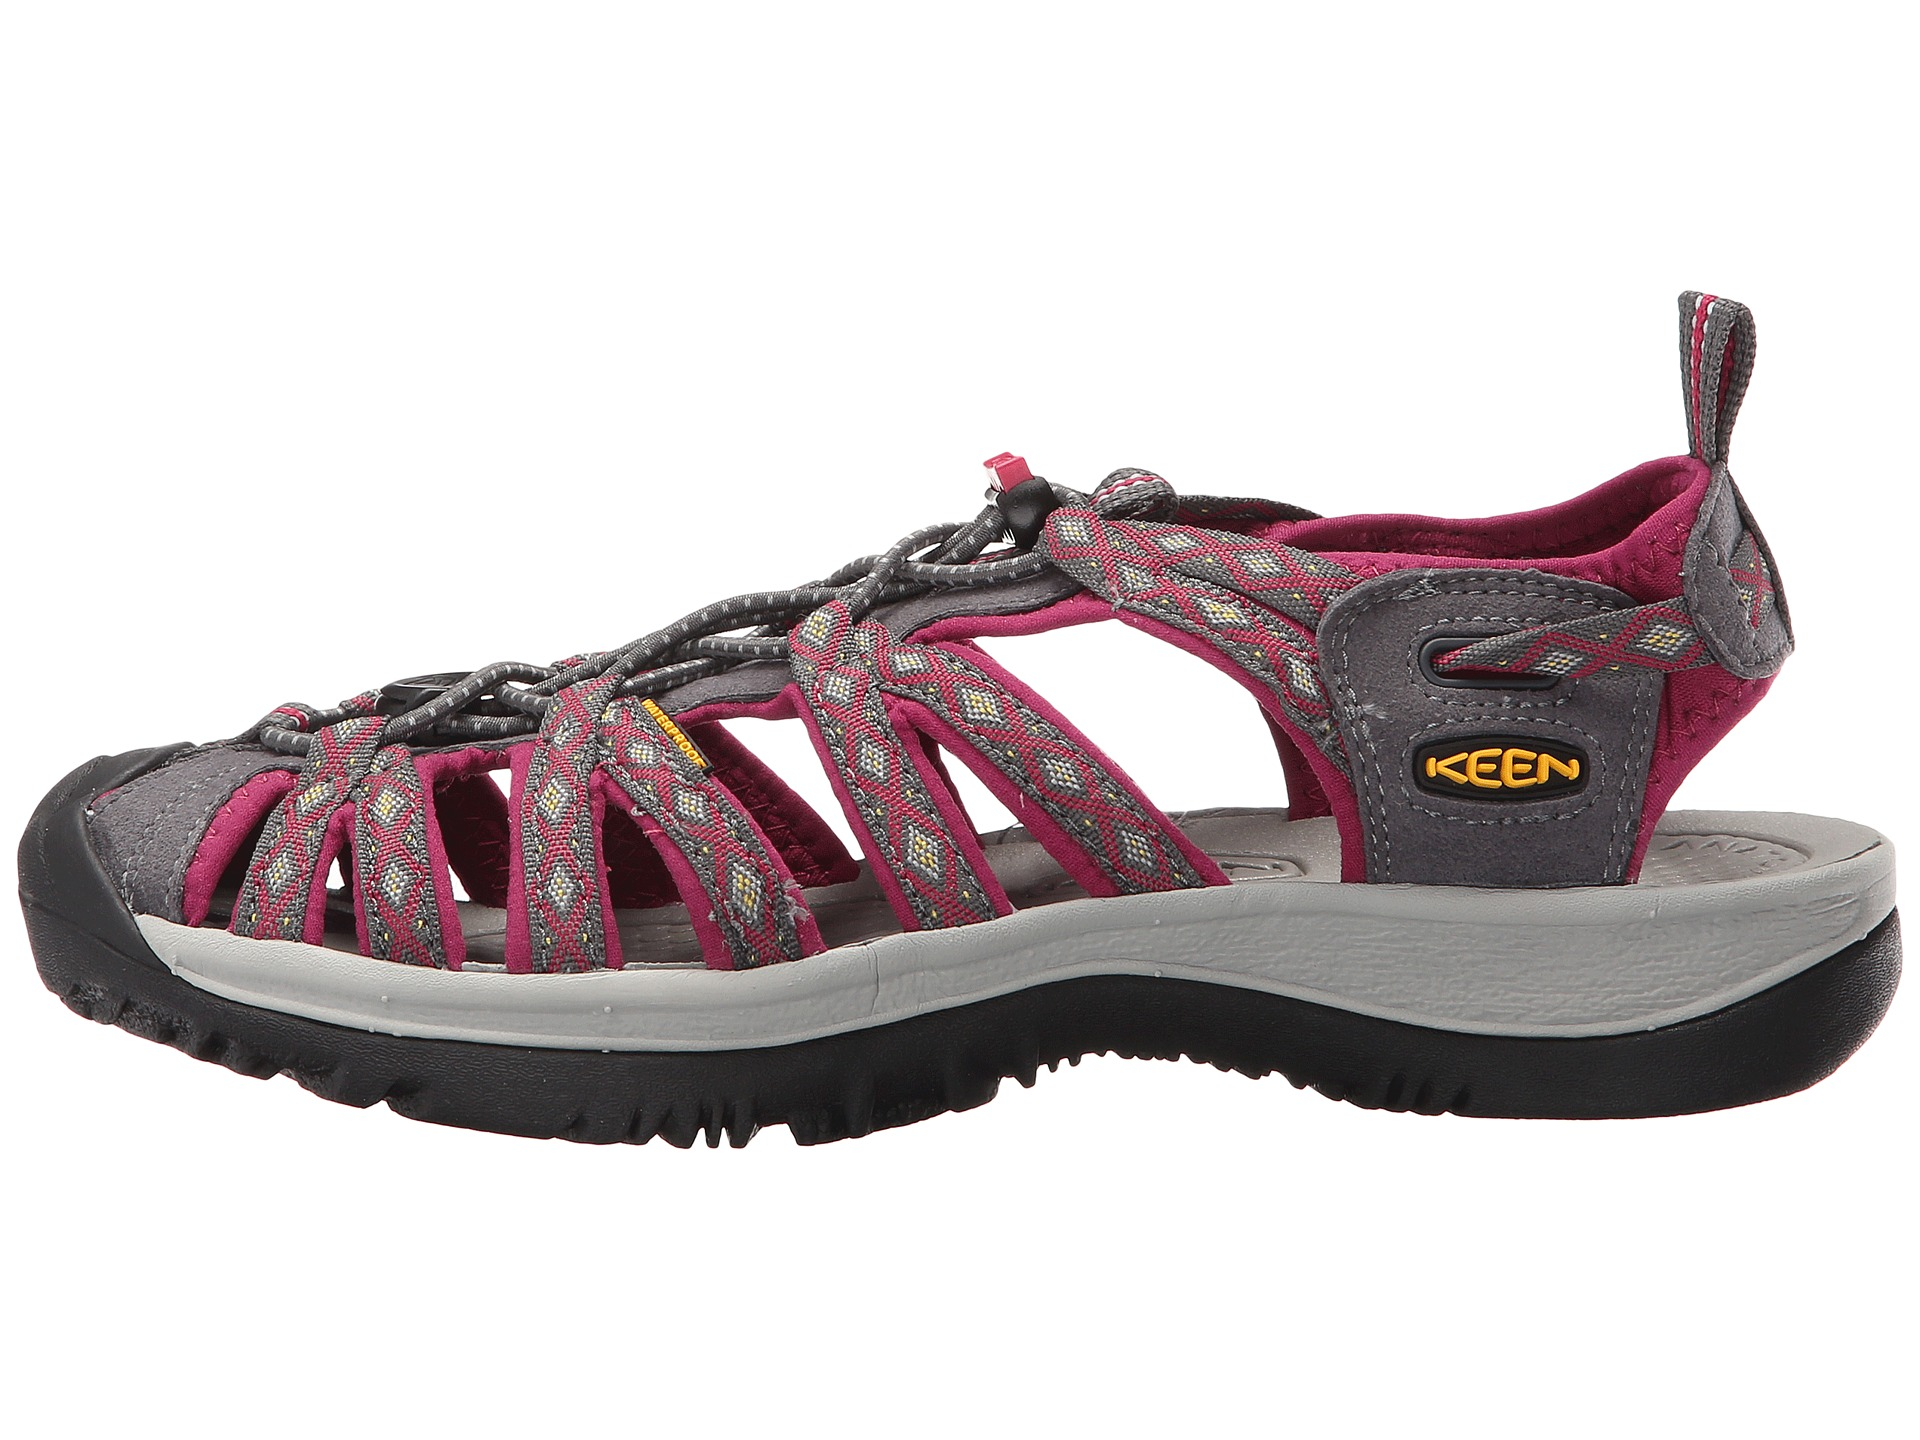 Keen Whisper At Zappos Com